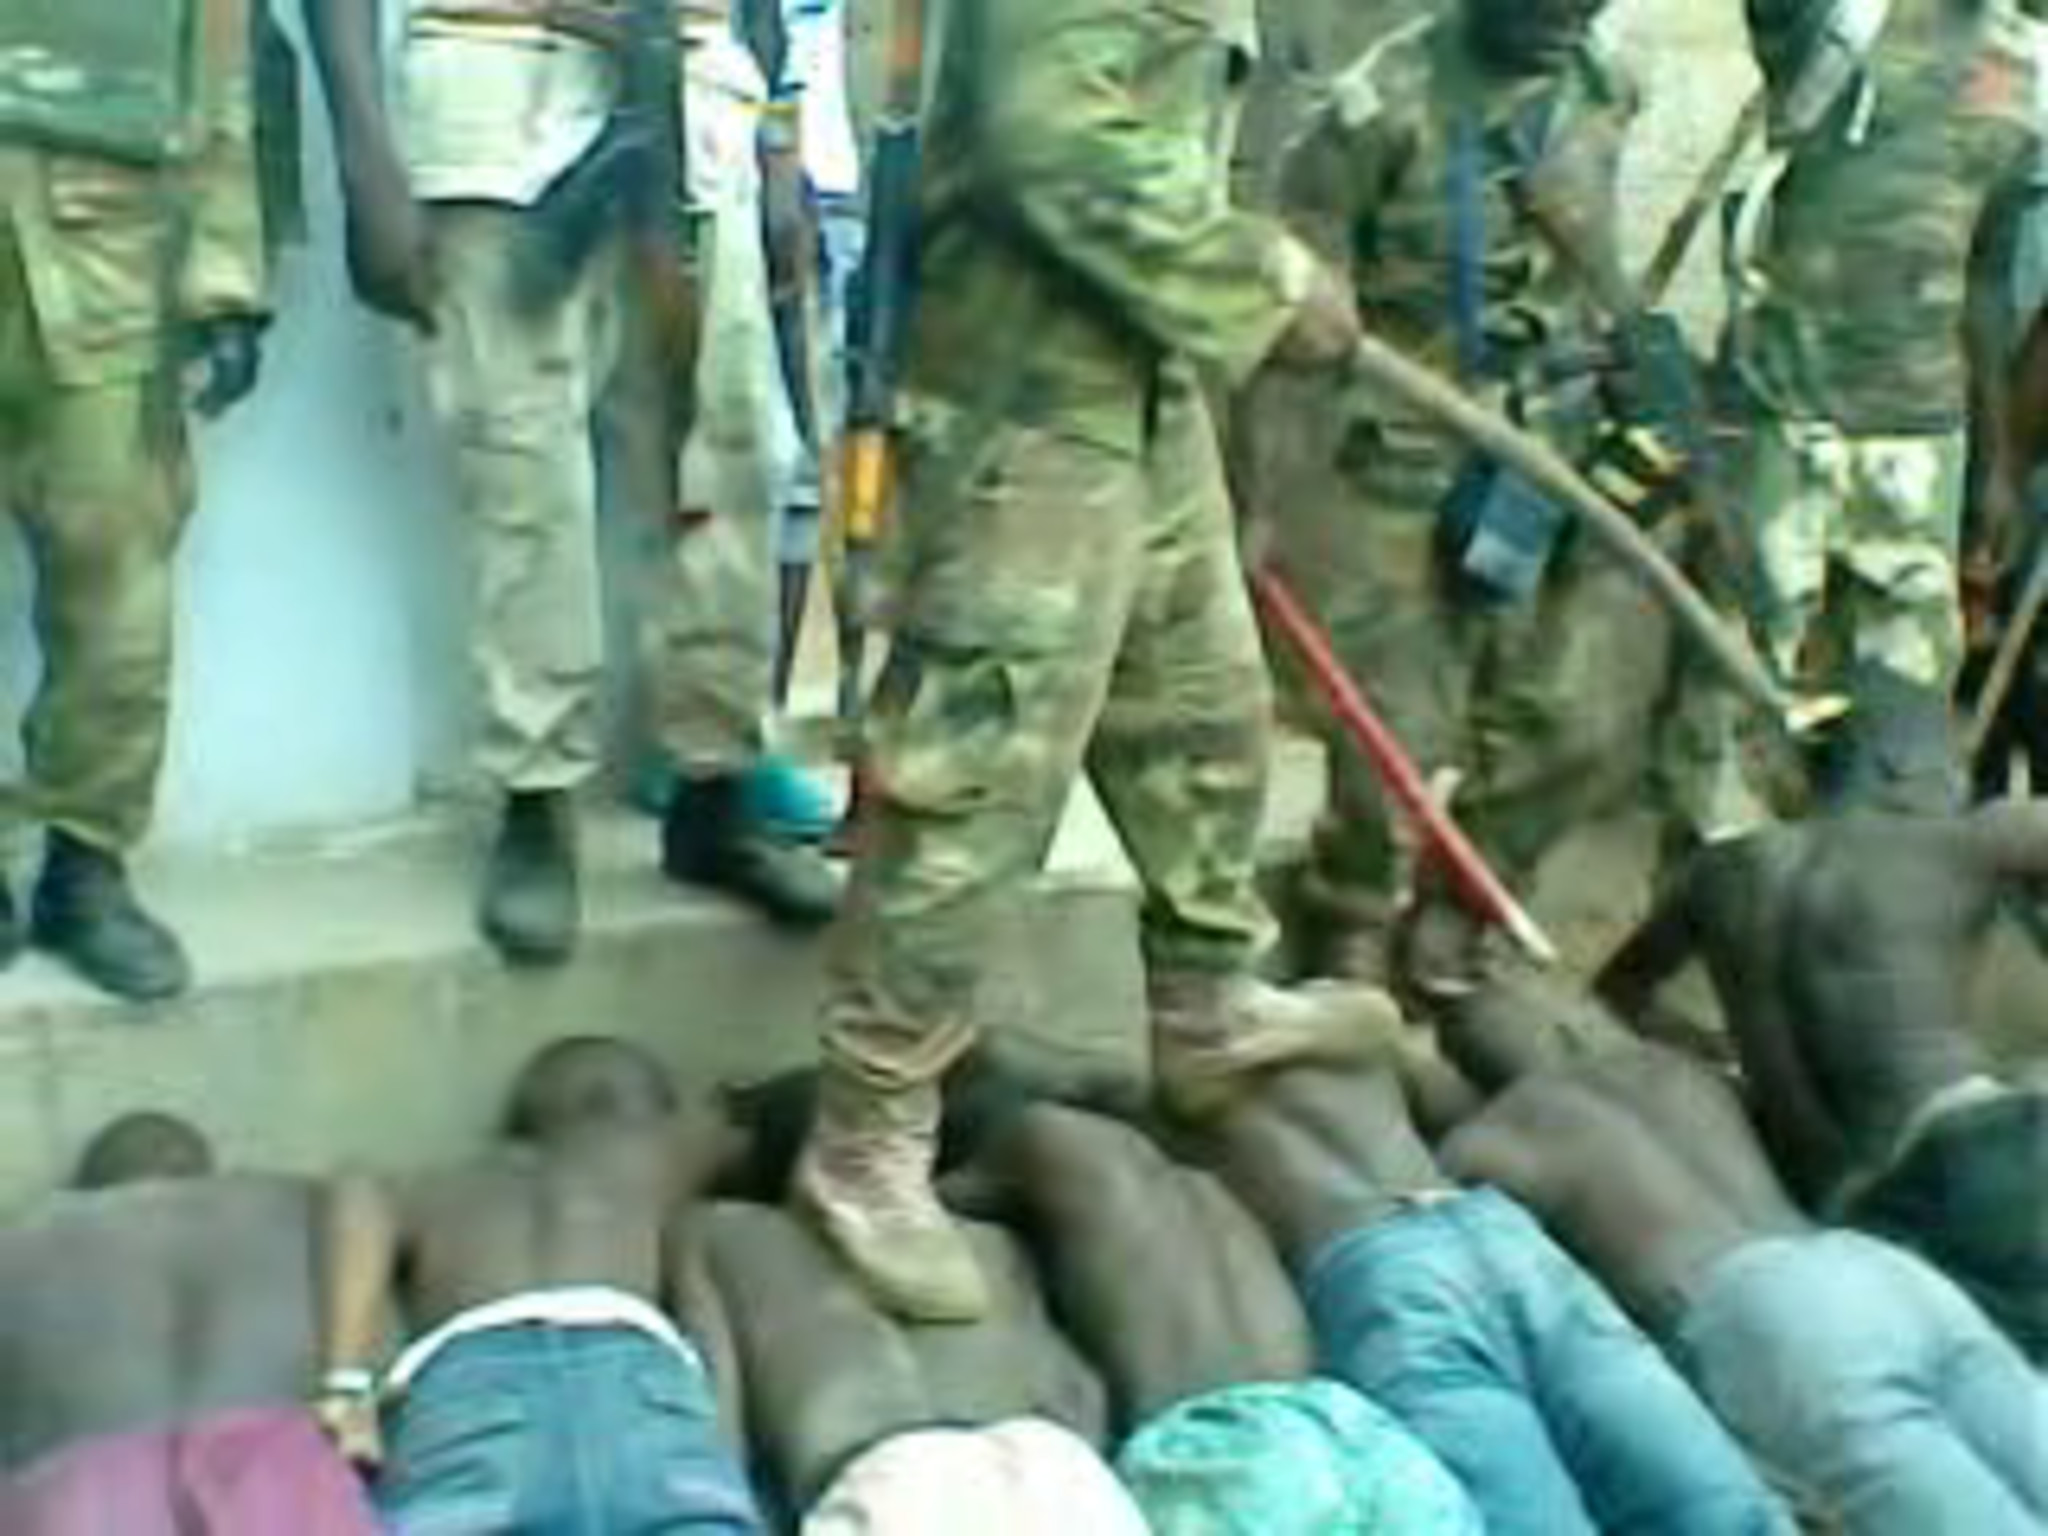 Images taken from a video of a 'screening' operation by the Nigerian military and Civilian Joint Task Force on 23 July 2013 in Bama town, Nigeria. More than 300 men were passed in front of a hidden informant. Up to 35 men were arrested on suspicion of being Boko Haram members. On 29 July 2013 military personnel took the men out of the barracks in Bama and brought them to their communities, where the soldiers shot them dead. The video was taken by a member of the Civilian Joint Task Force.